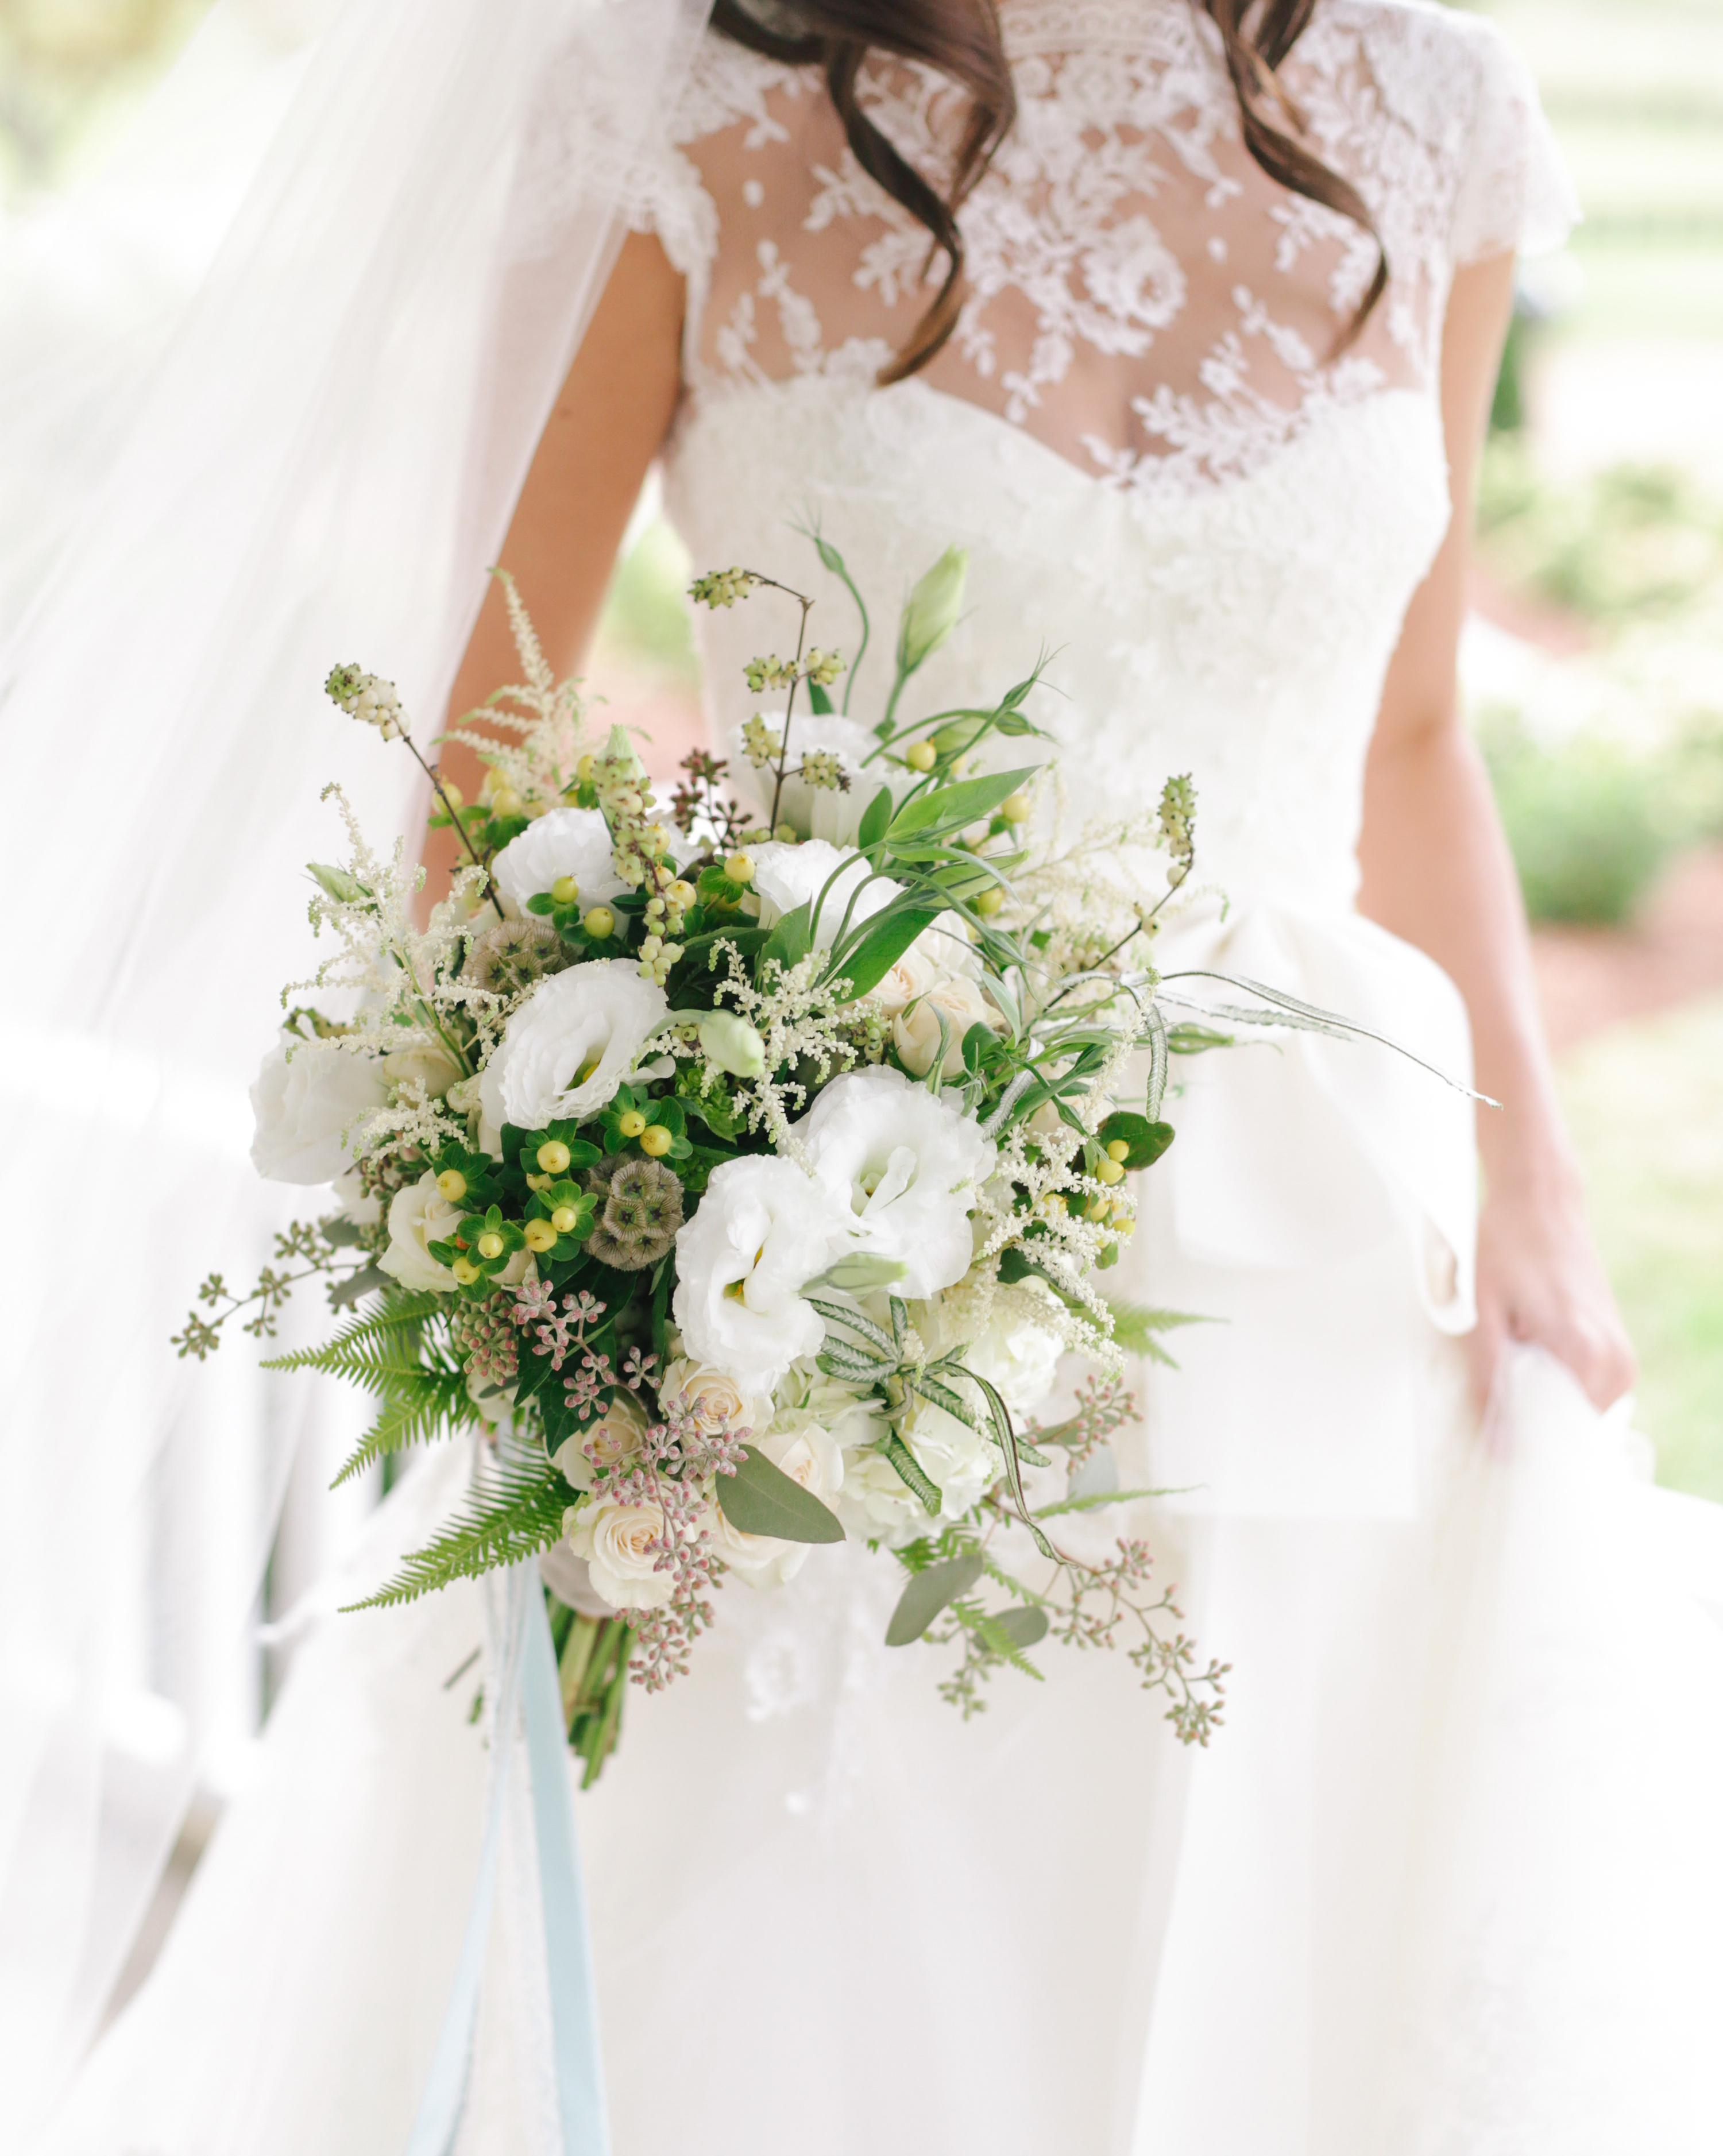 destiny-taylor-wedding-bouquet-103-s112347-1115.jpg